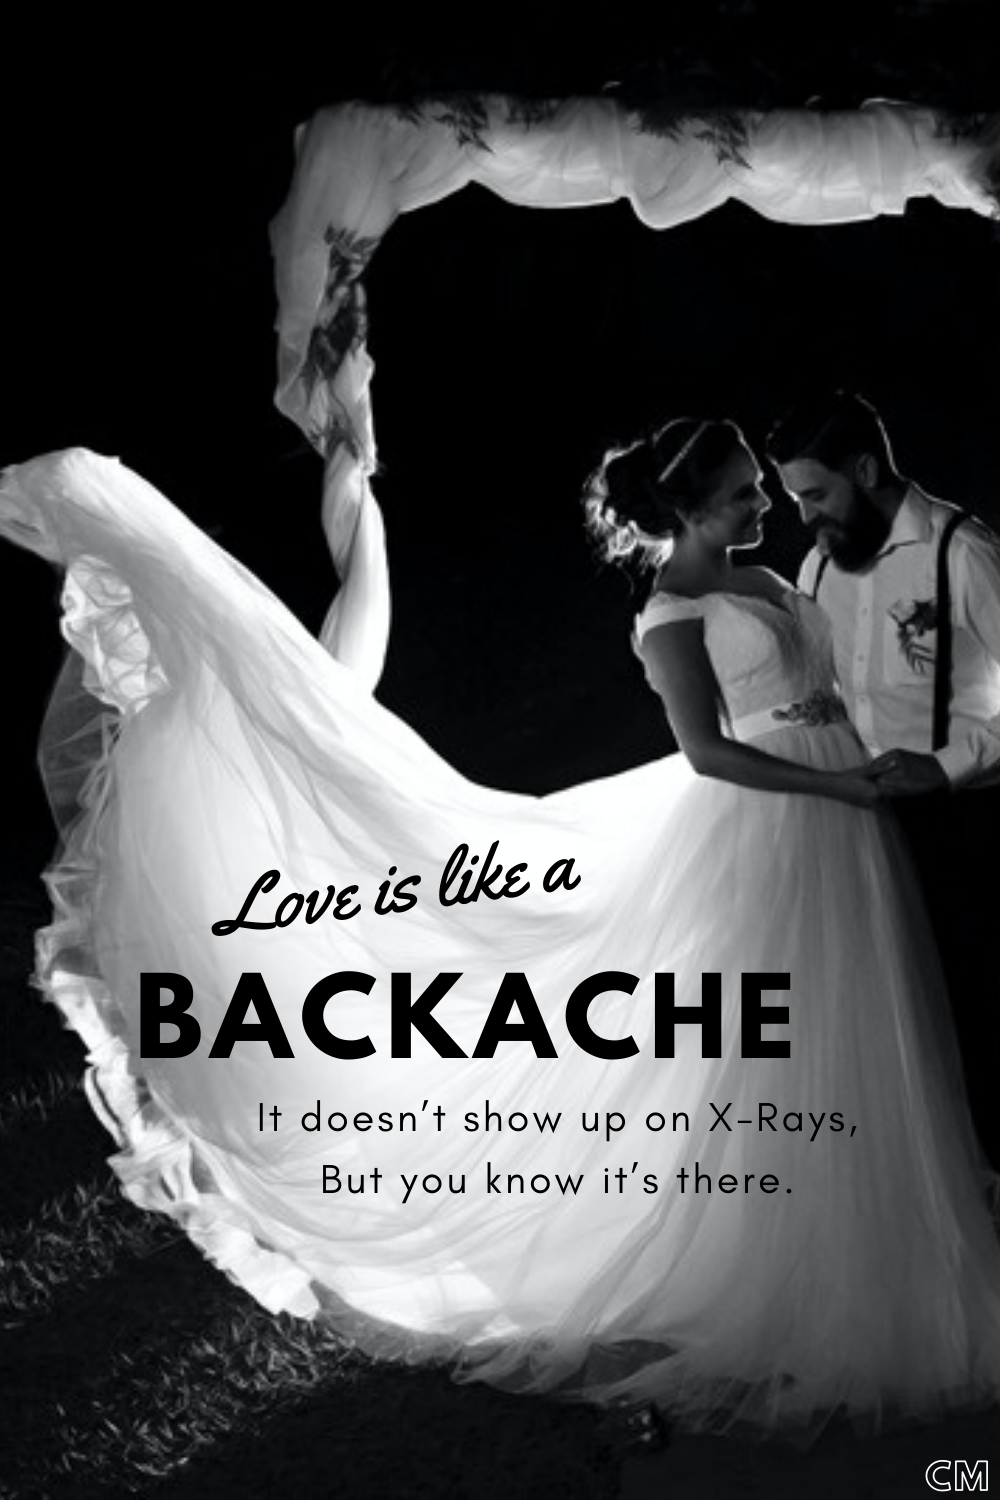 Inject a bit of humour into your vows or speech. Here's a